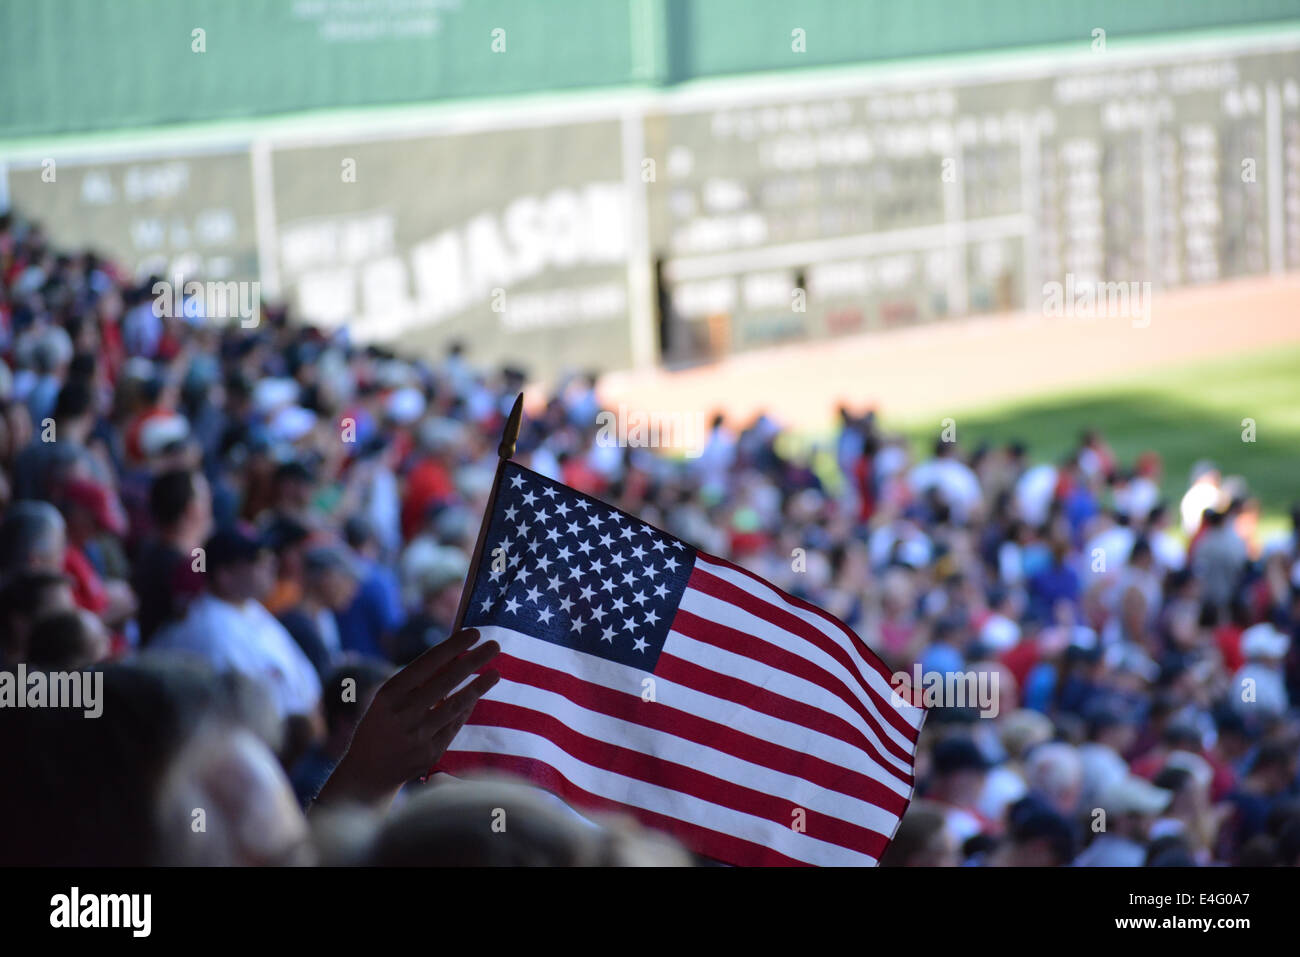 Fan waving a flag during a Boston Red Sox game at Fenway Park Stock